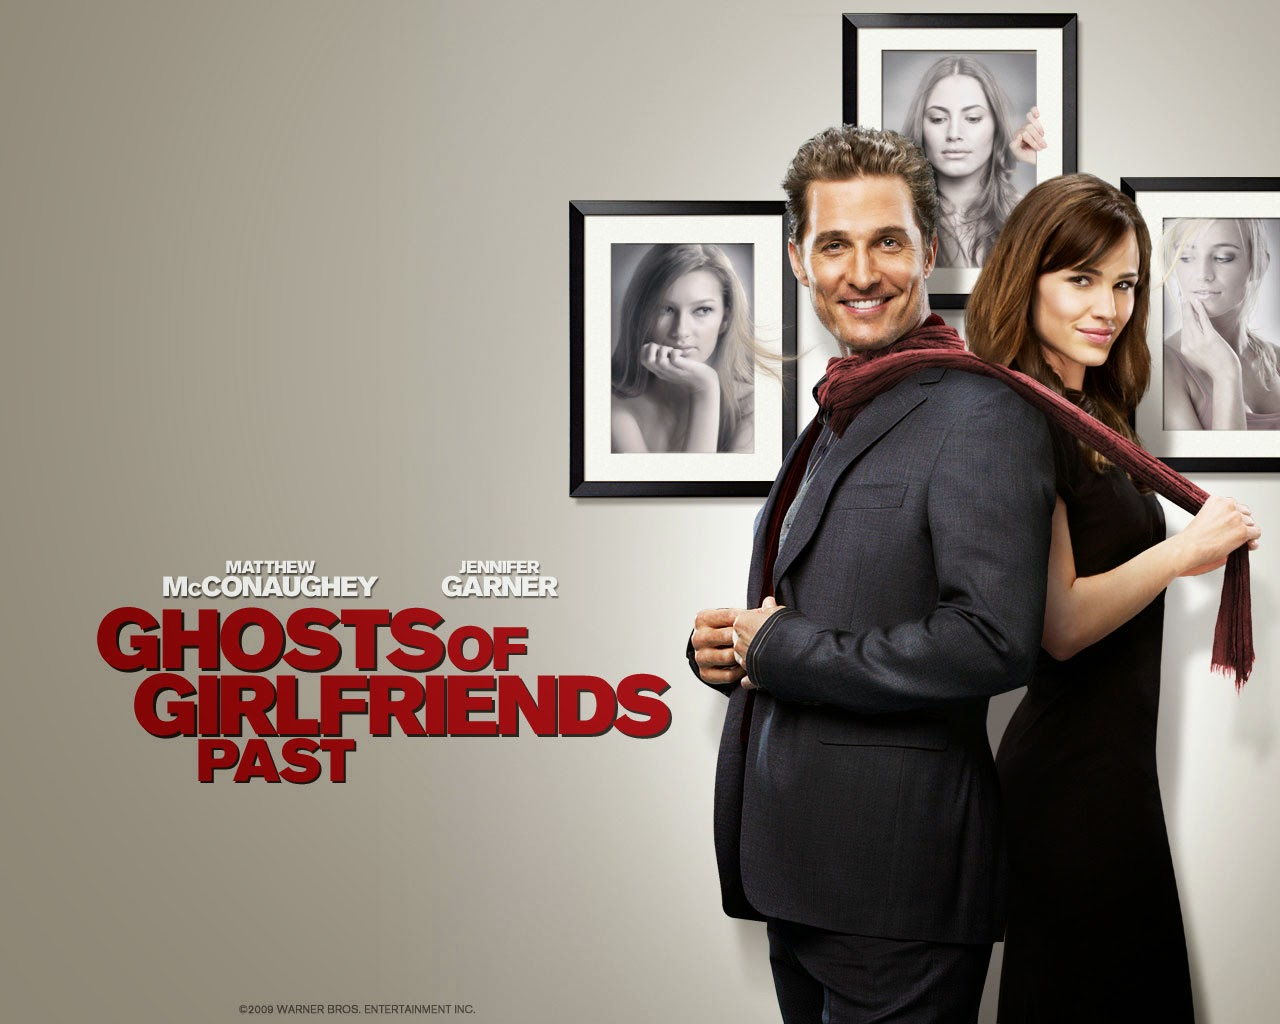 ghosts-of-girlfriends-past-review